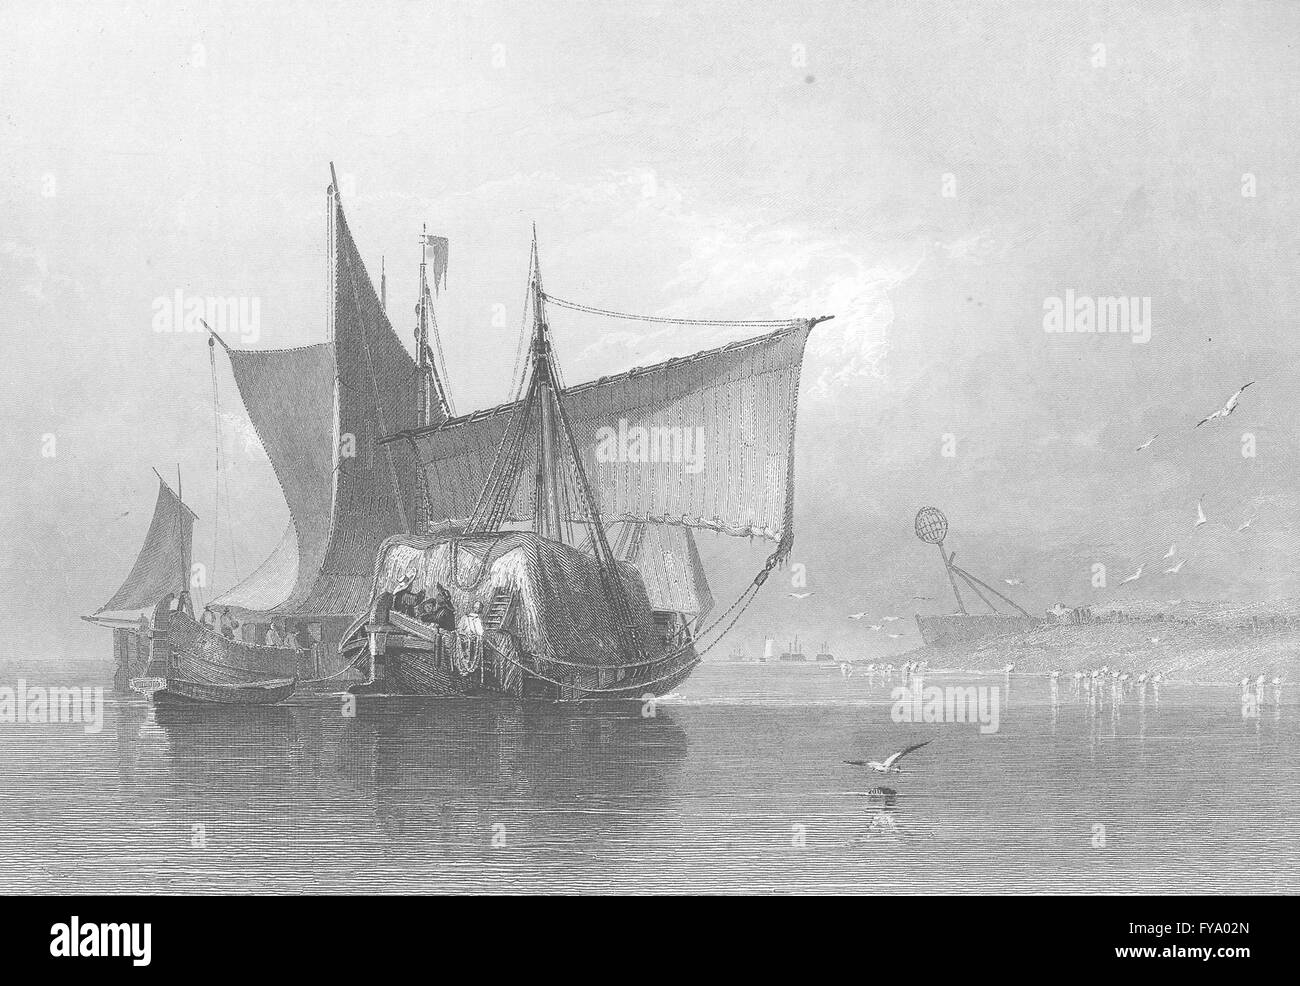 NORFOLK: Boats, Yarmouth, antique print 1836 - Stock Image